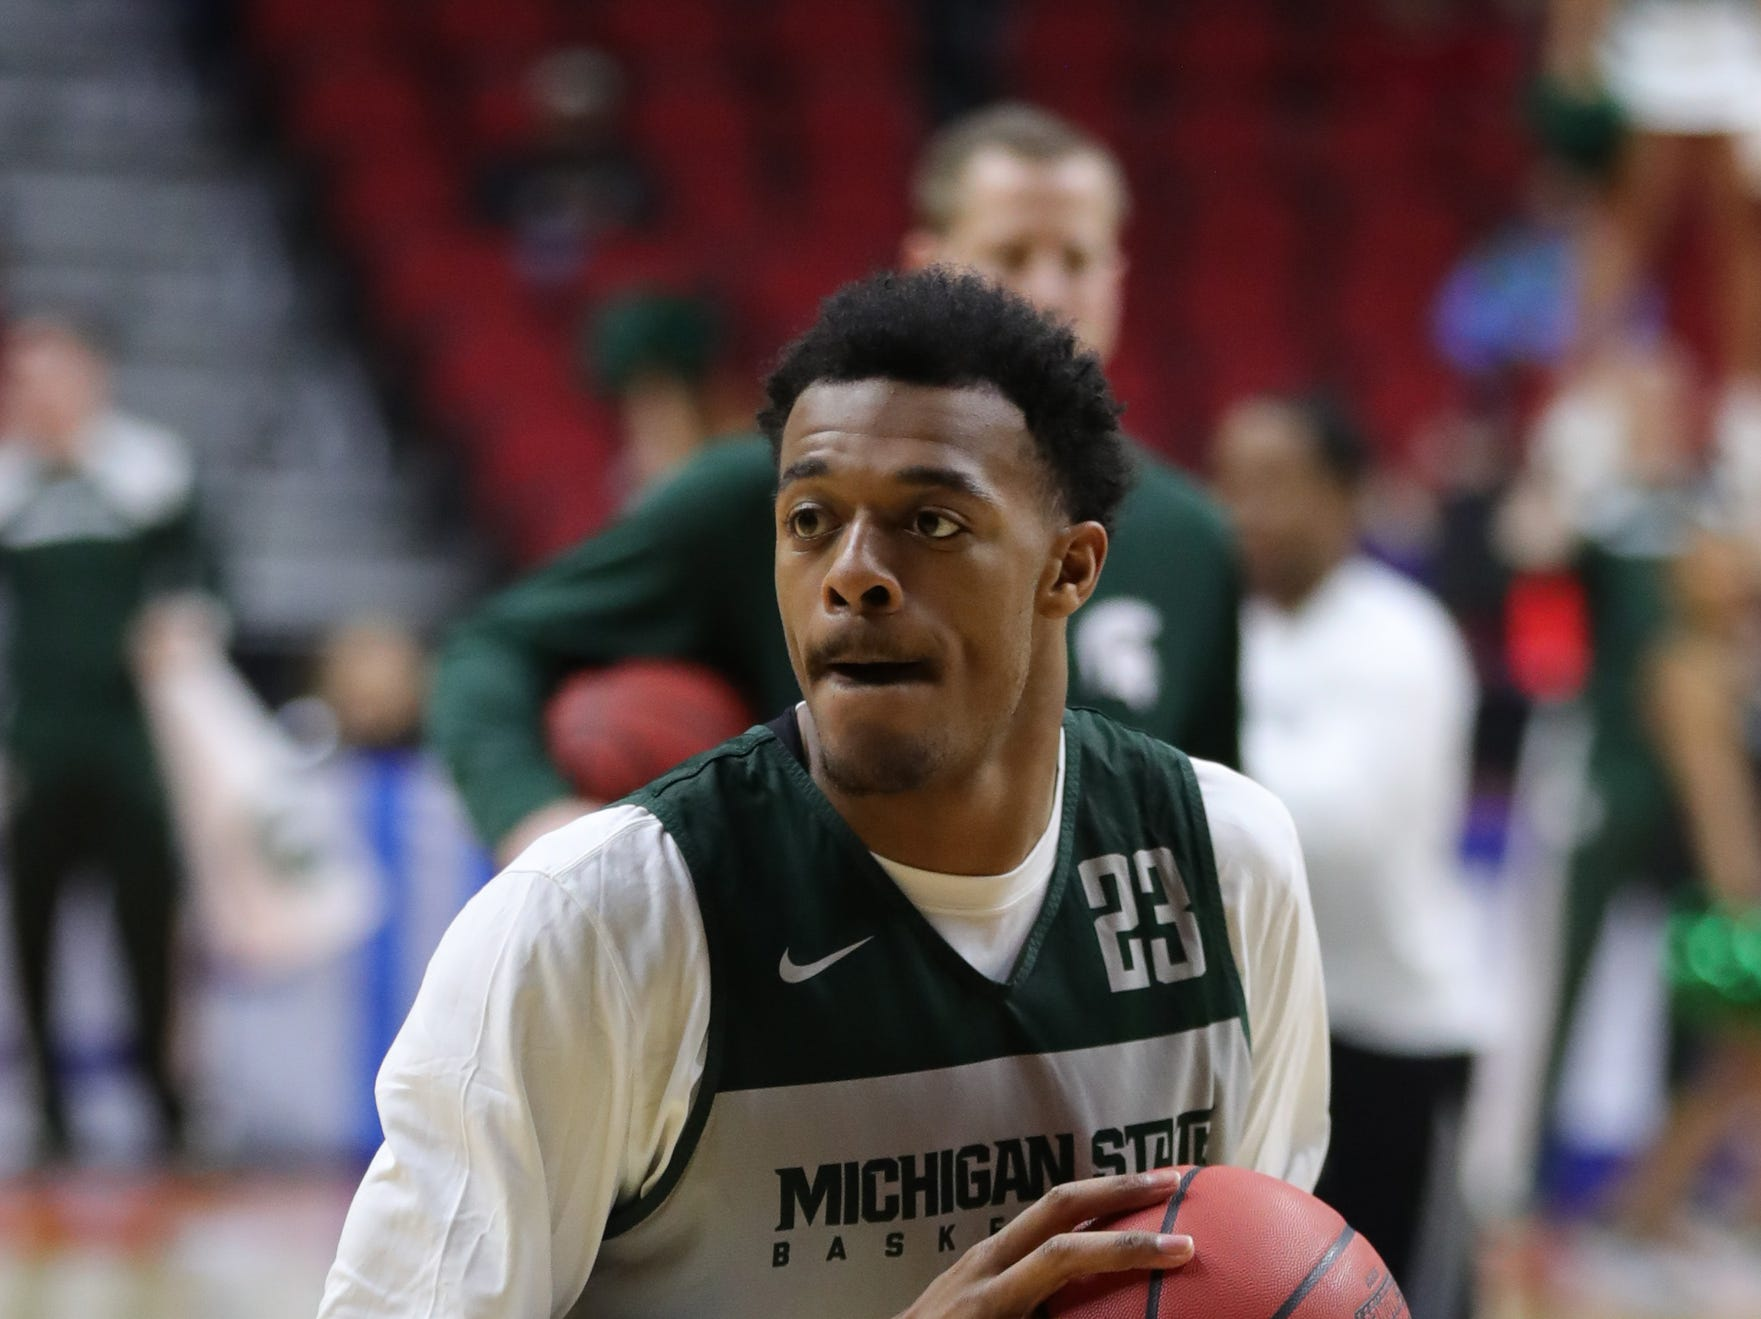 Michigan State forward Xavier Tillman goes through drills for the first-round NCAA tournament game against Michigan State on Wednesday, March 20, 2019 at Wells Fargo Arena in Des Moines, Iowa.